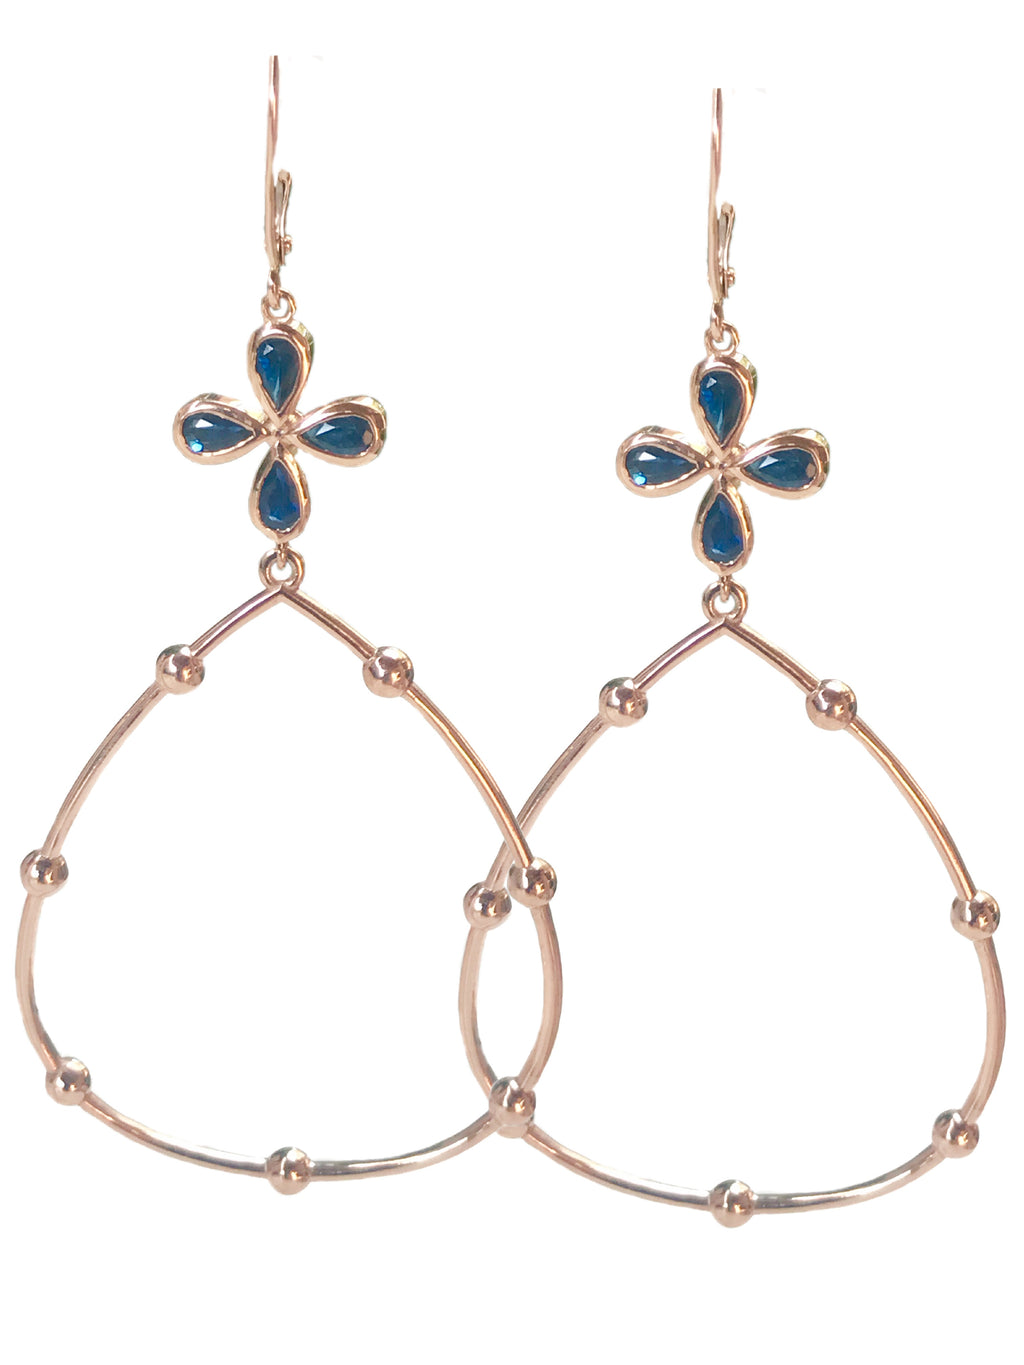 Blue Sapphire Hoop Earrings set in 14k Rose Gold